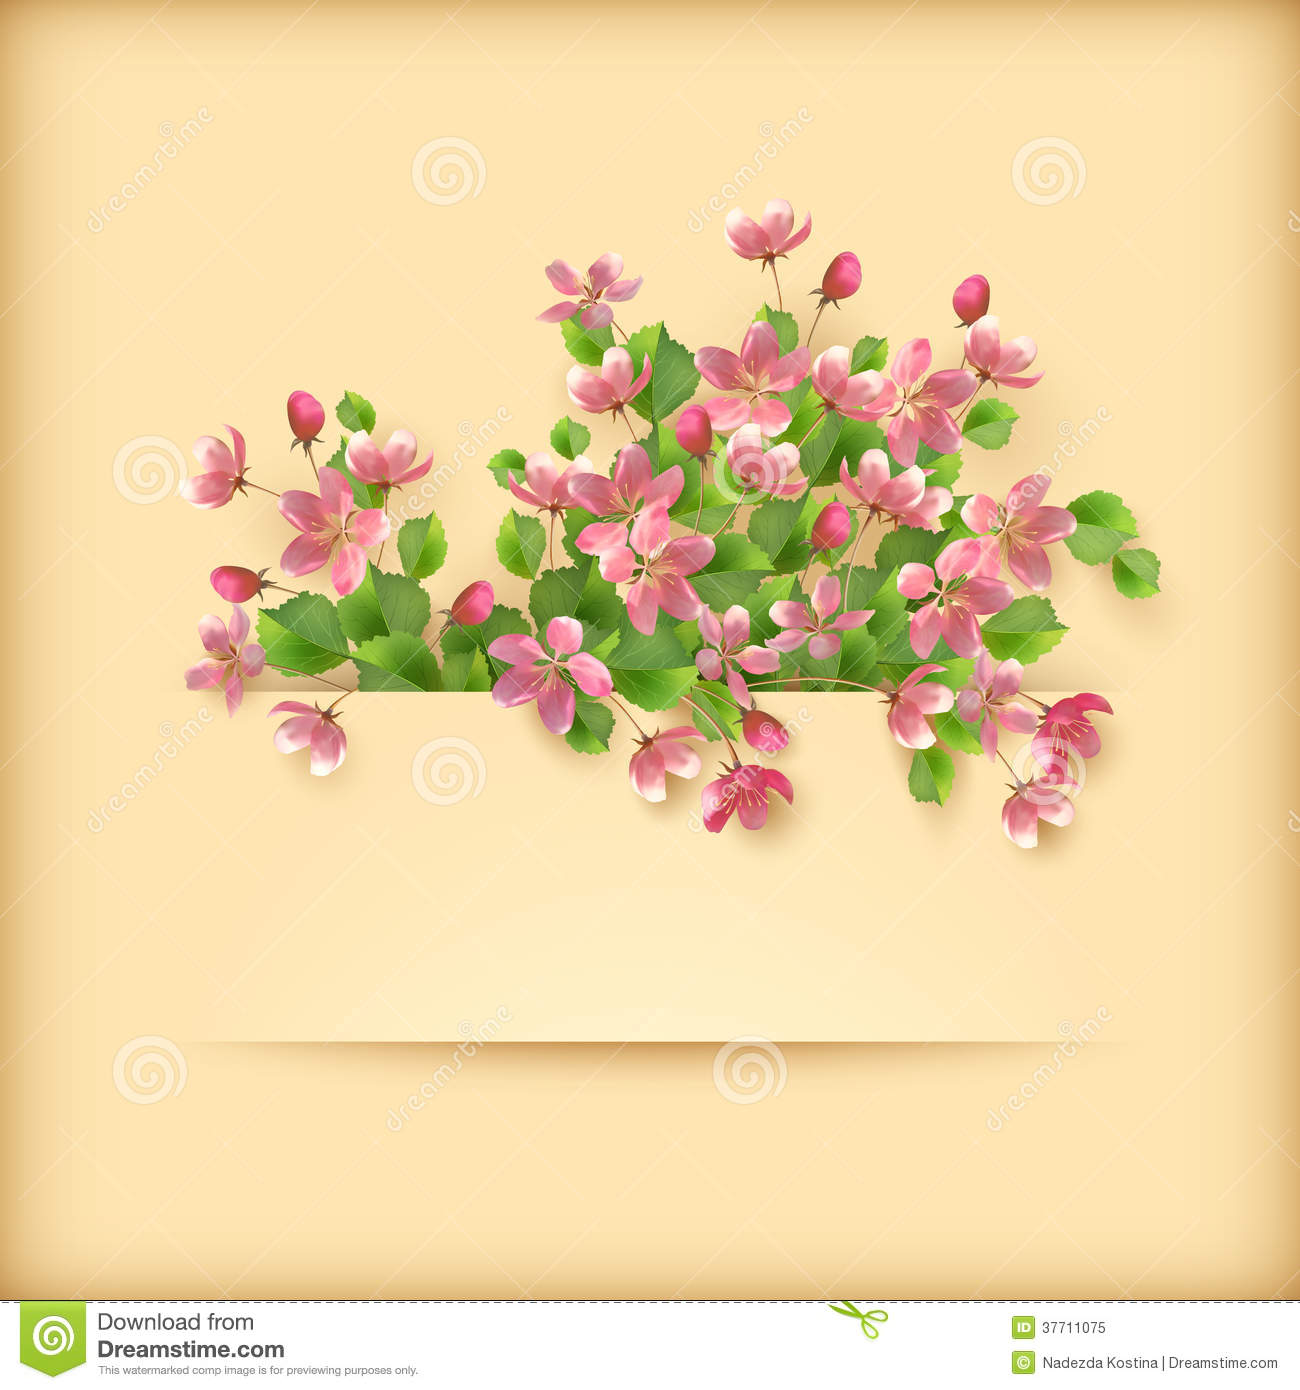 Greeting Card with Pink Flowers